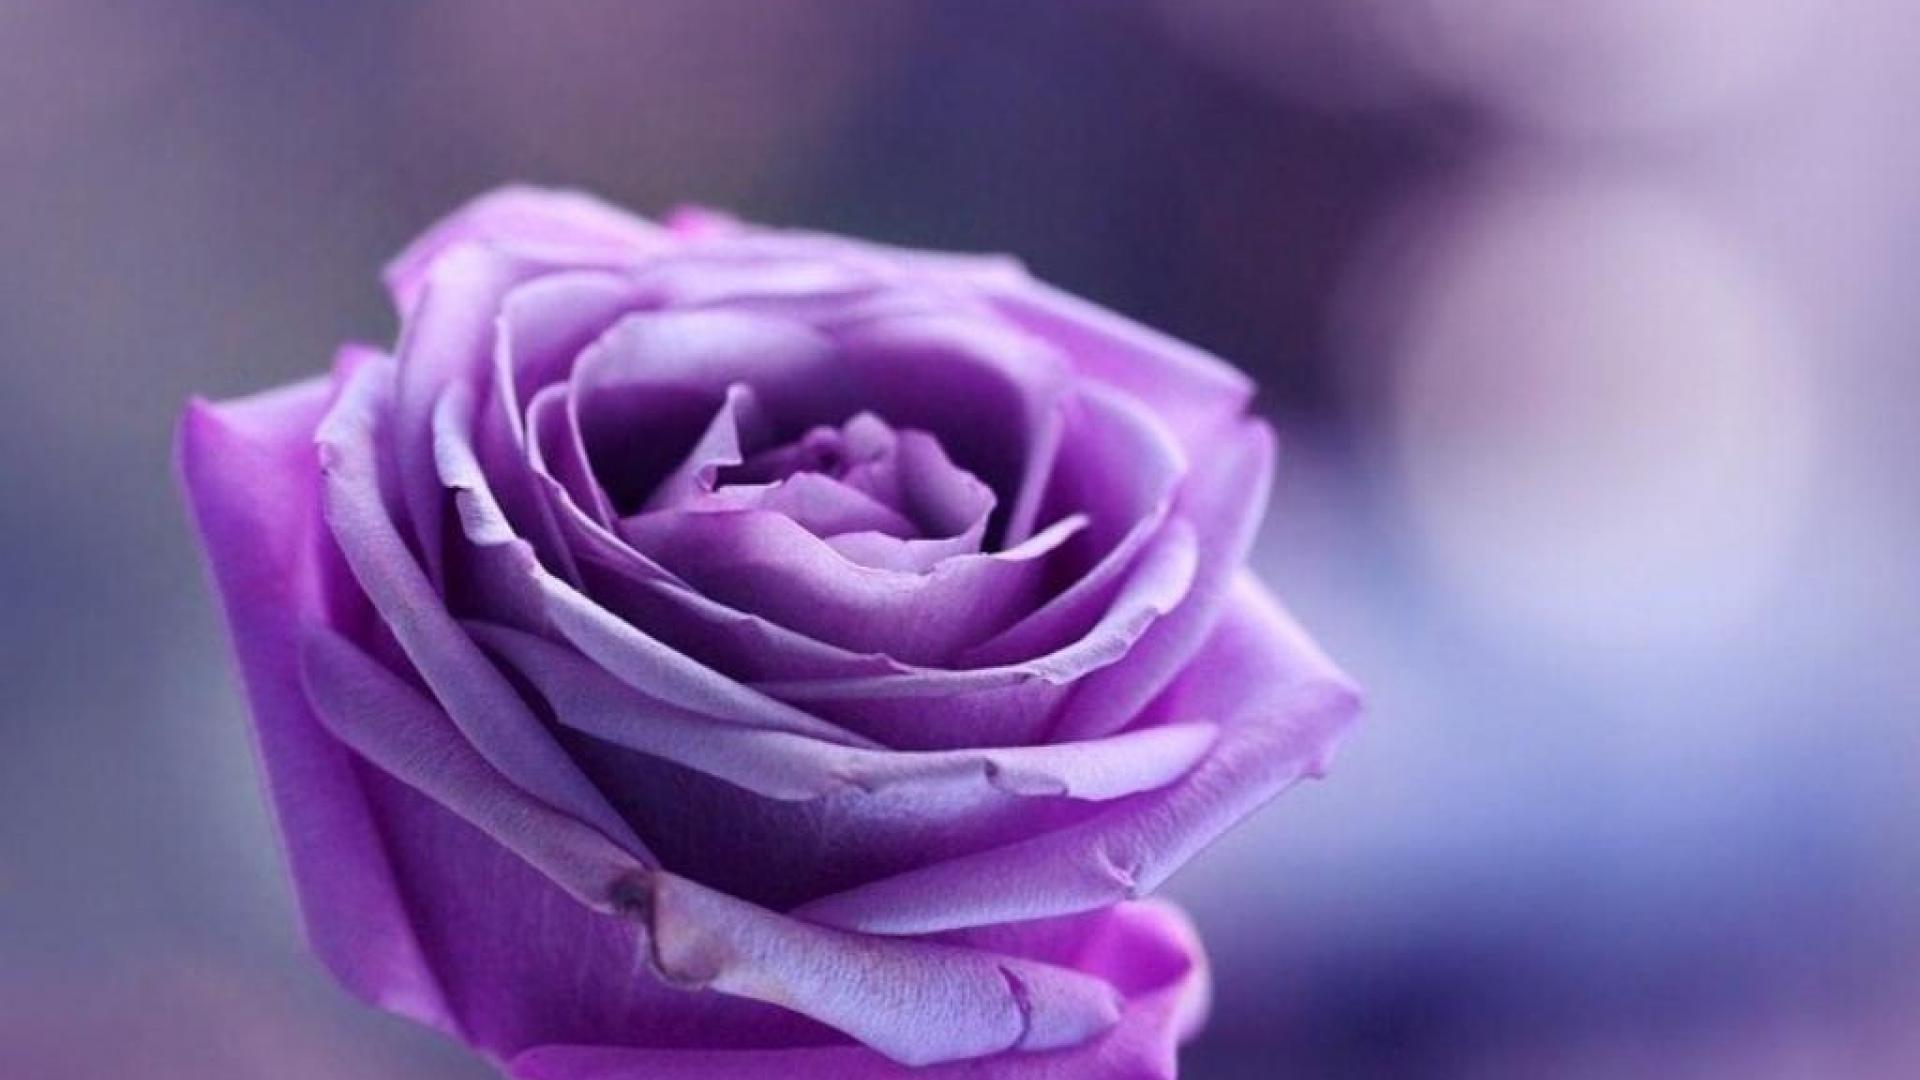 Purple Rose Backgrounds - Wallpaper Cave